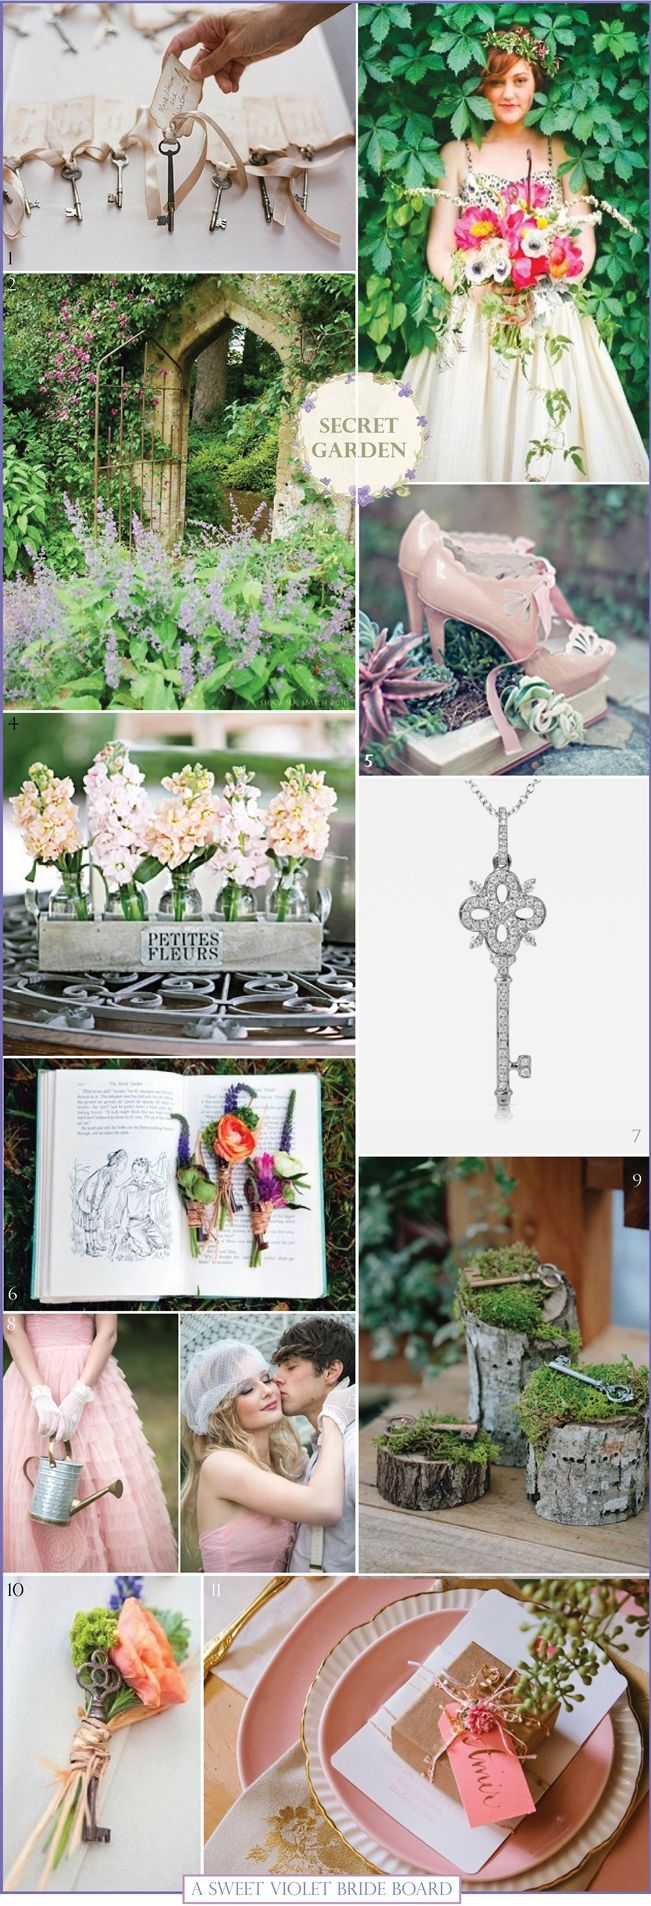 Wedding Inspiration Board #9: Secret Garden. 1) Bridal Musings  2) Pinterest  3) Apryl Ann Photography  4) Brides of Adelaide  5) Wedding Gawker  6) Green Wedding Shoes  7) 77 Diamonds  8) Love My Dress  9) Zest it Up  10) Green Wedding Shoes  11) Blue Eye Brown Eye